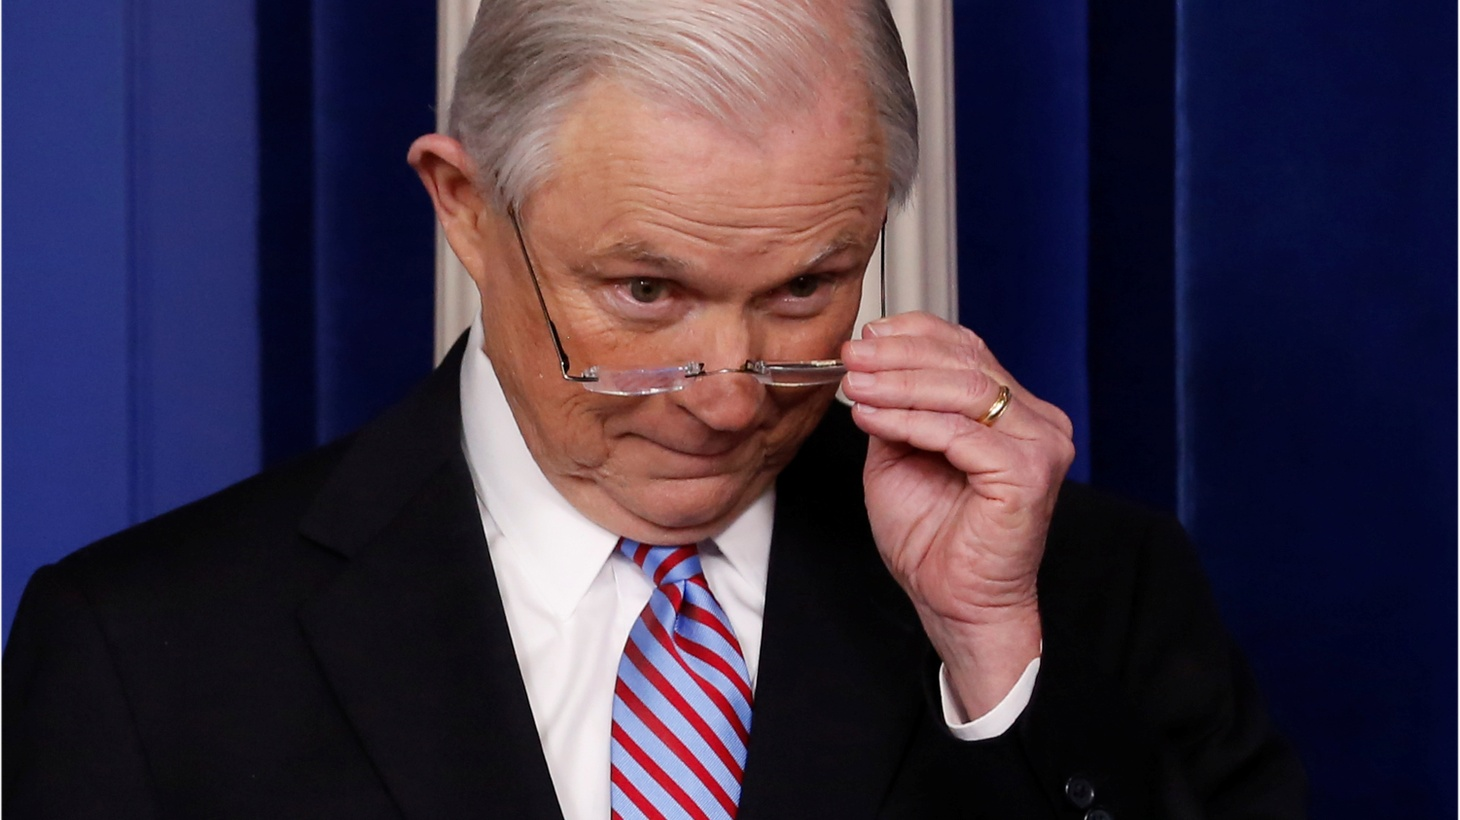 """Attorney General Jeff Sessions announced sanctions for sanctuary cities today. We find out what that means for Los Angeles, which the mayor has called a """"city of sanctuary."""" Also, California's Air Resources Board has voted to create new, tougher emissions requirements, which puts it on a collision course with the Trump administration."""